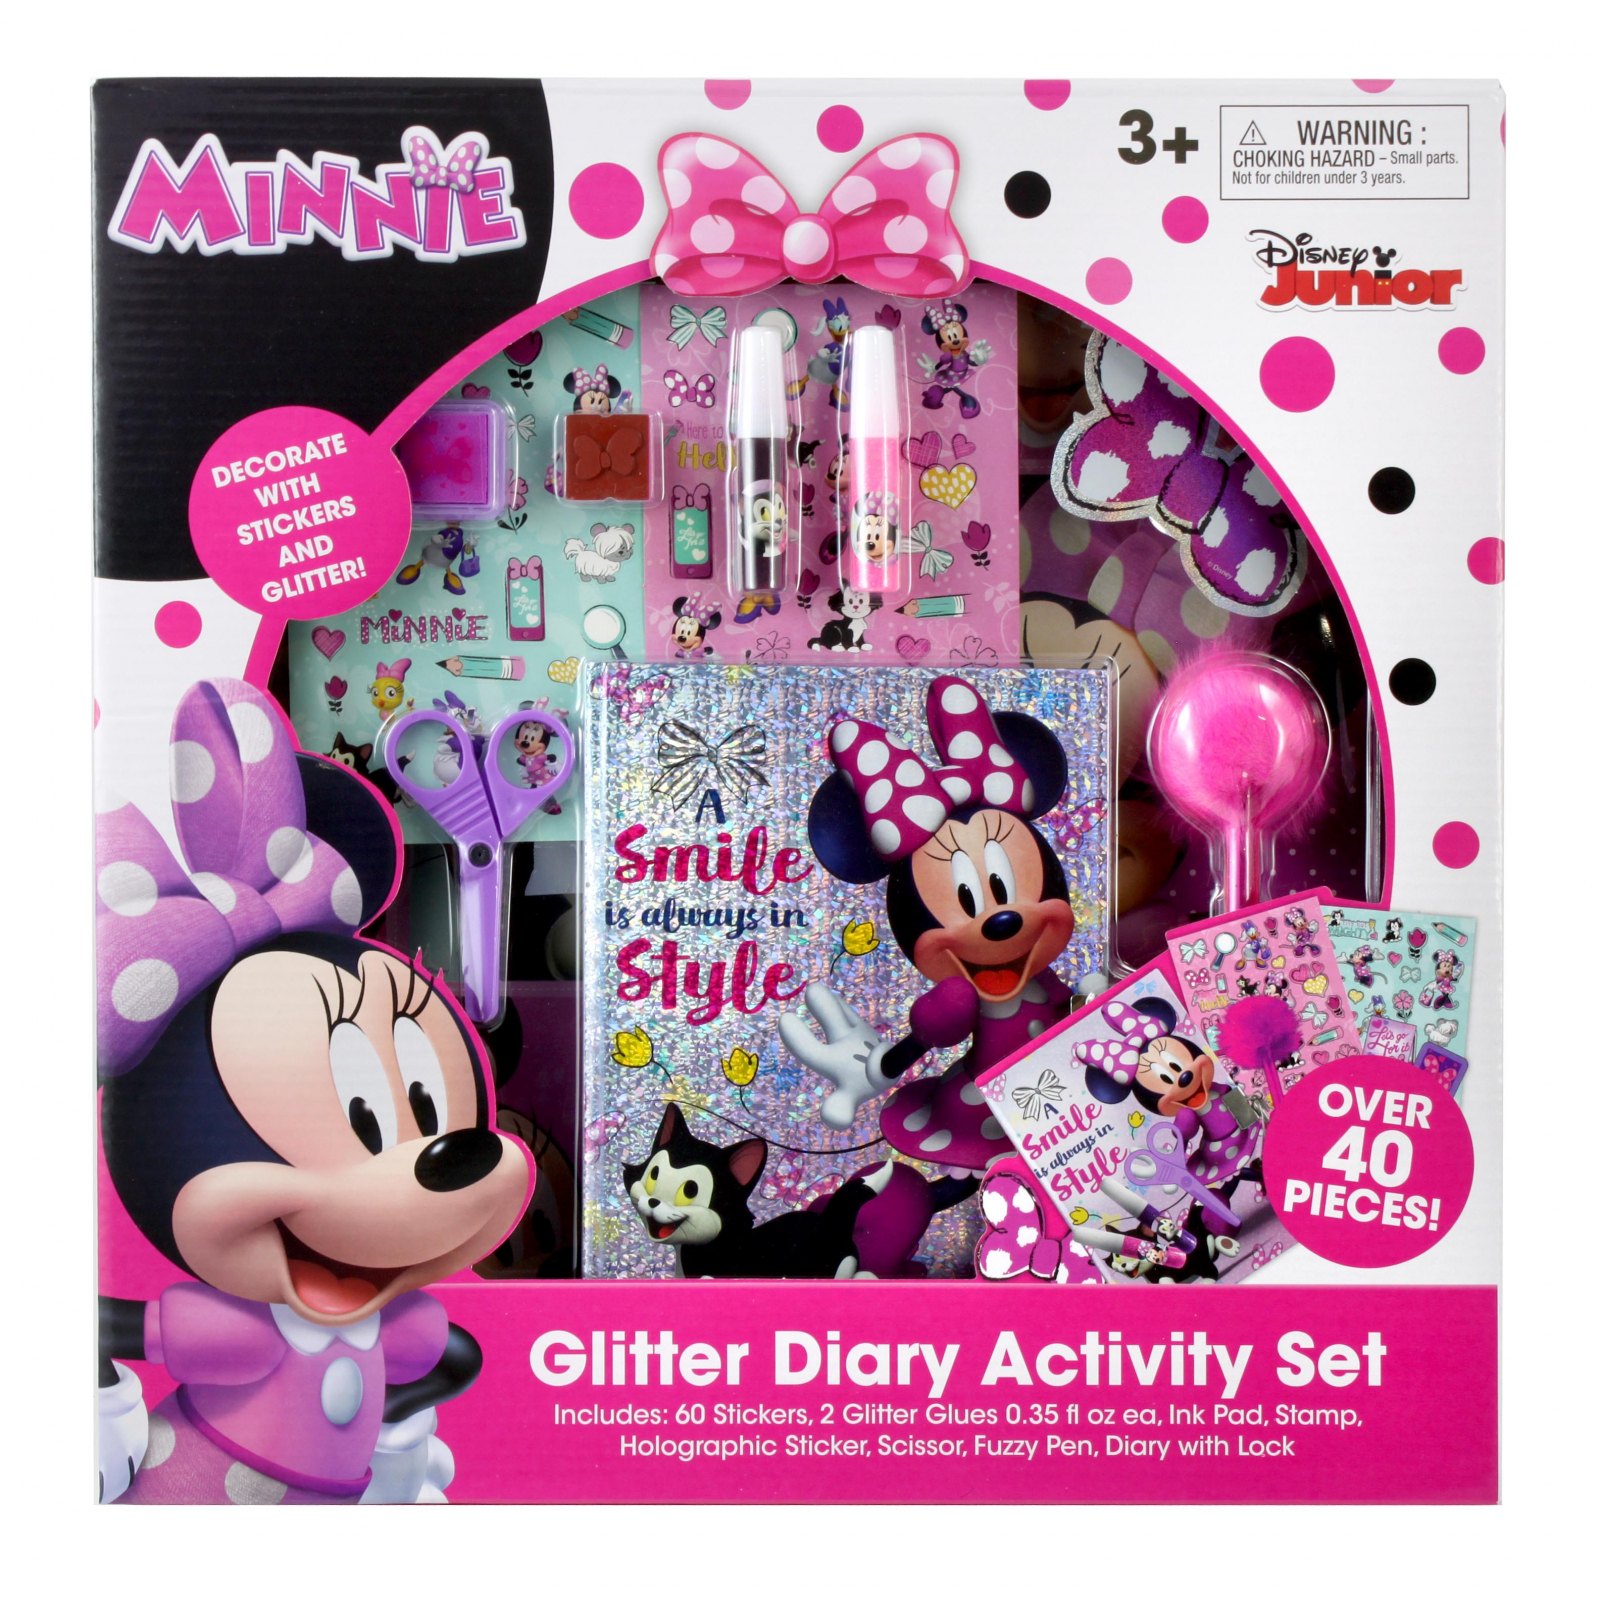 Disney Minnie Mouse Pink Glitter Diary Activity Stationery